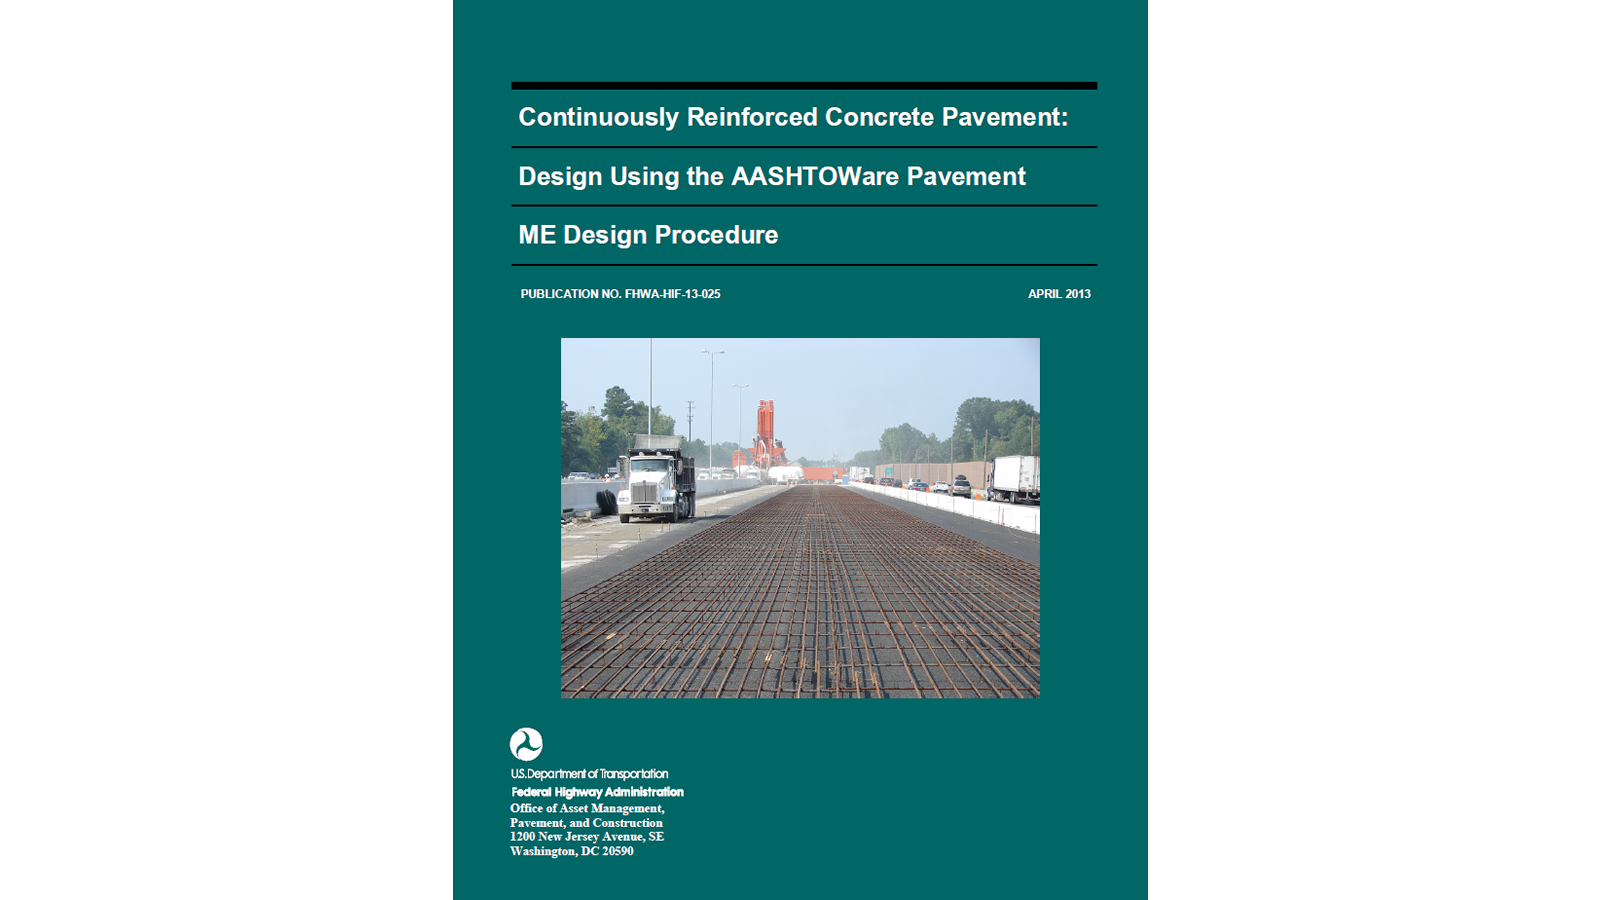 CRCP Design Using the AASHTOWare Pavement ME Design Procedure (FHWA-HIF-13-025)